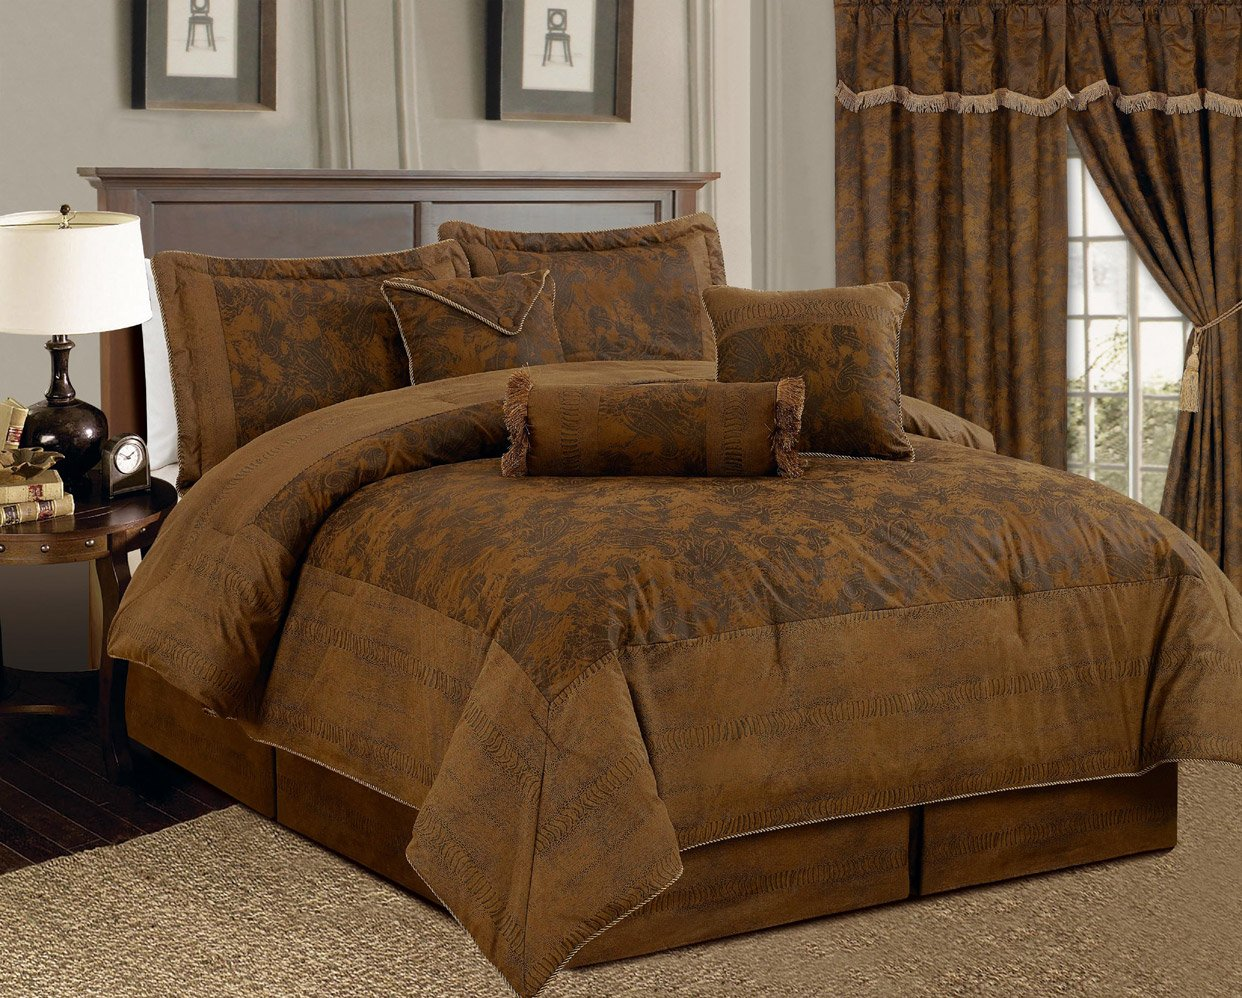 state cal delta set piece class comforters lovable oversizedking down bronze appealing bedroom queen at king comforter oversized sets multipurpose for